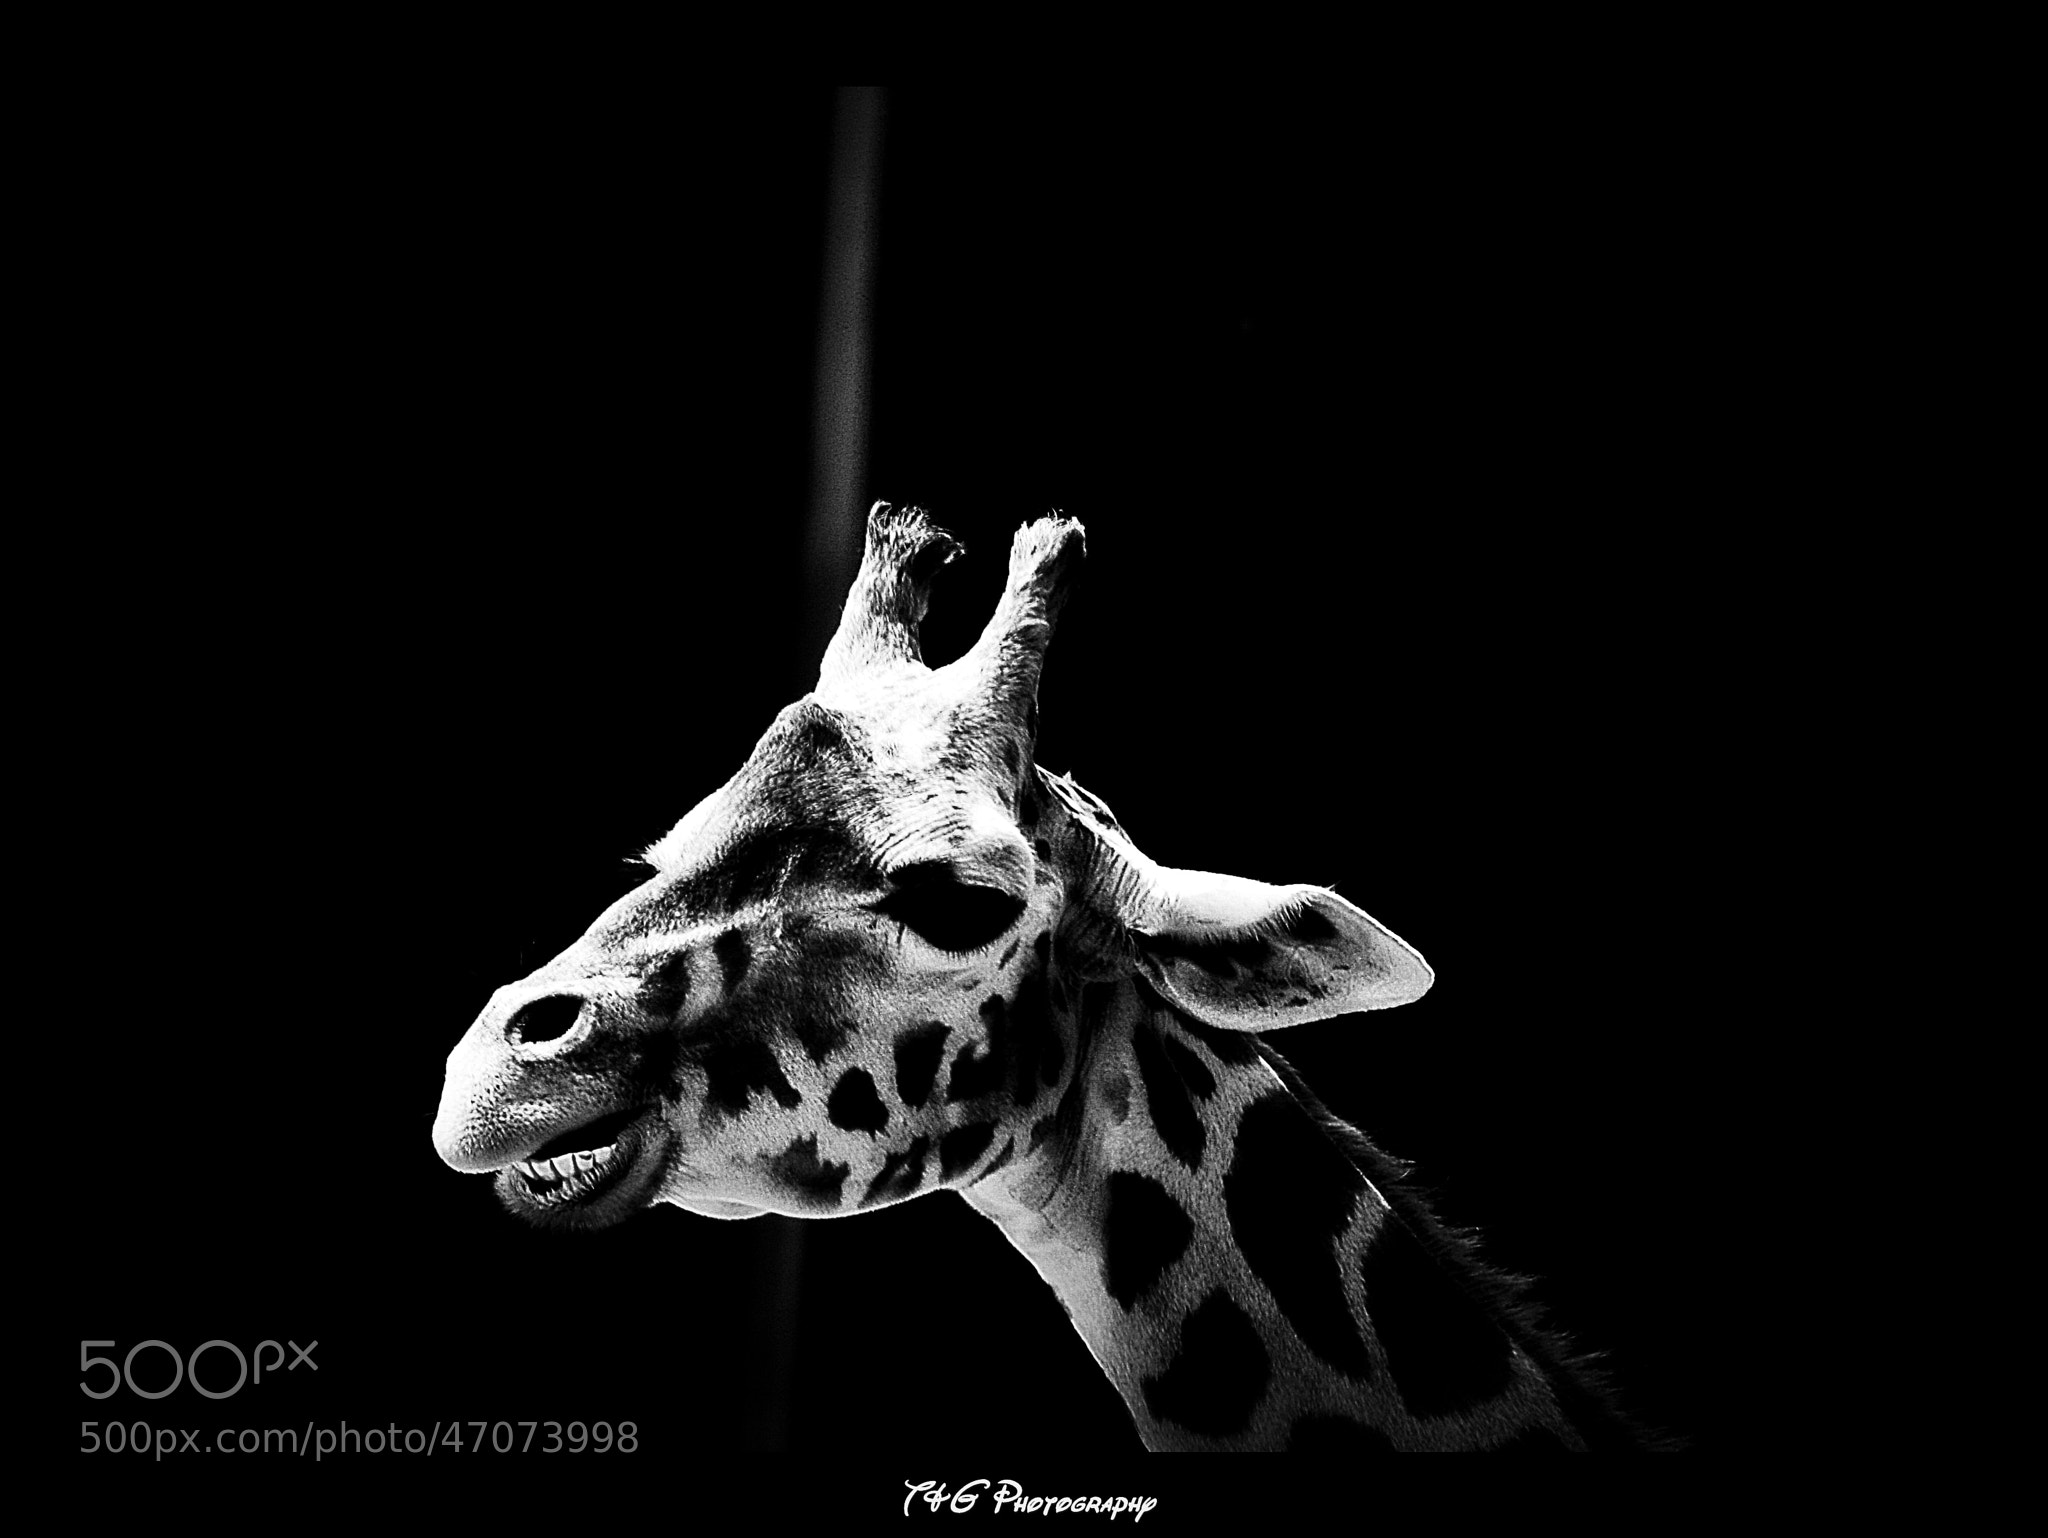 Photograph Giraffe b/w by T&G Photography  on 500px